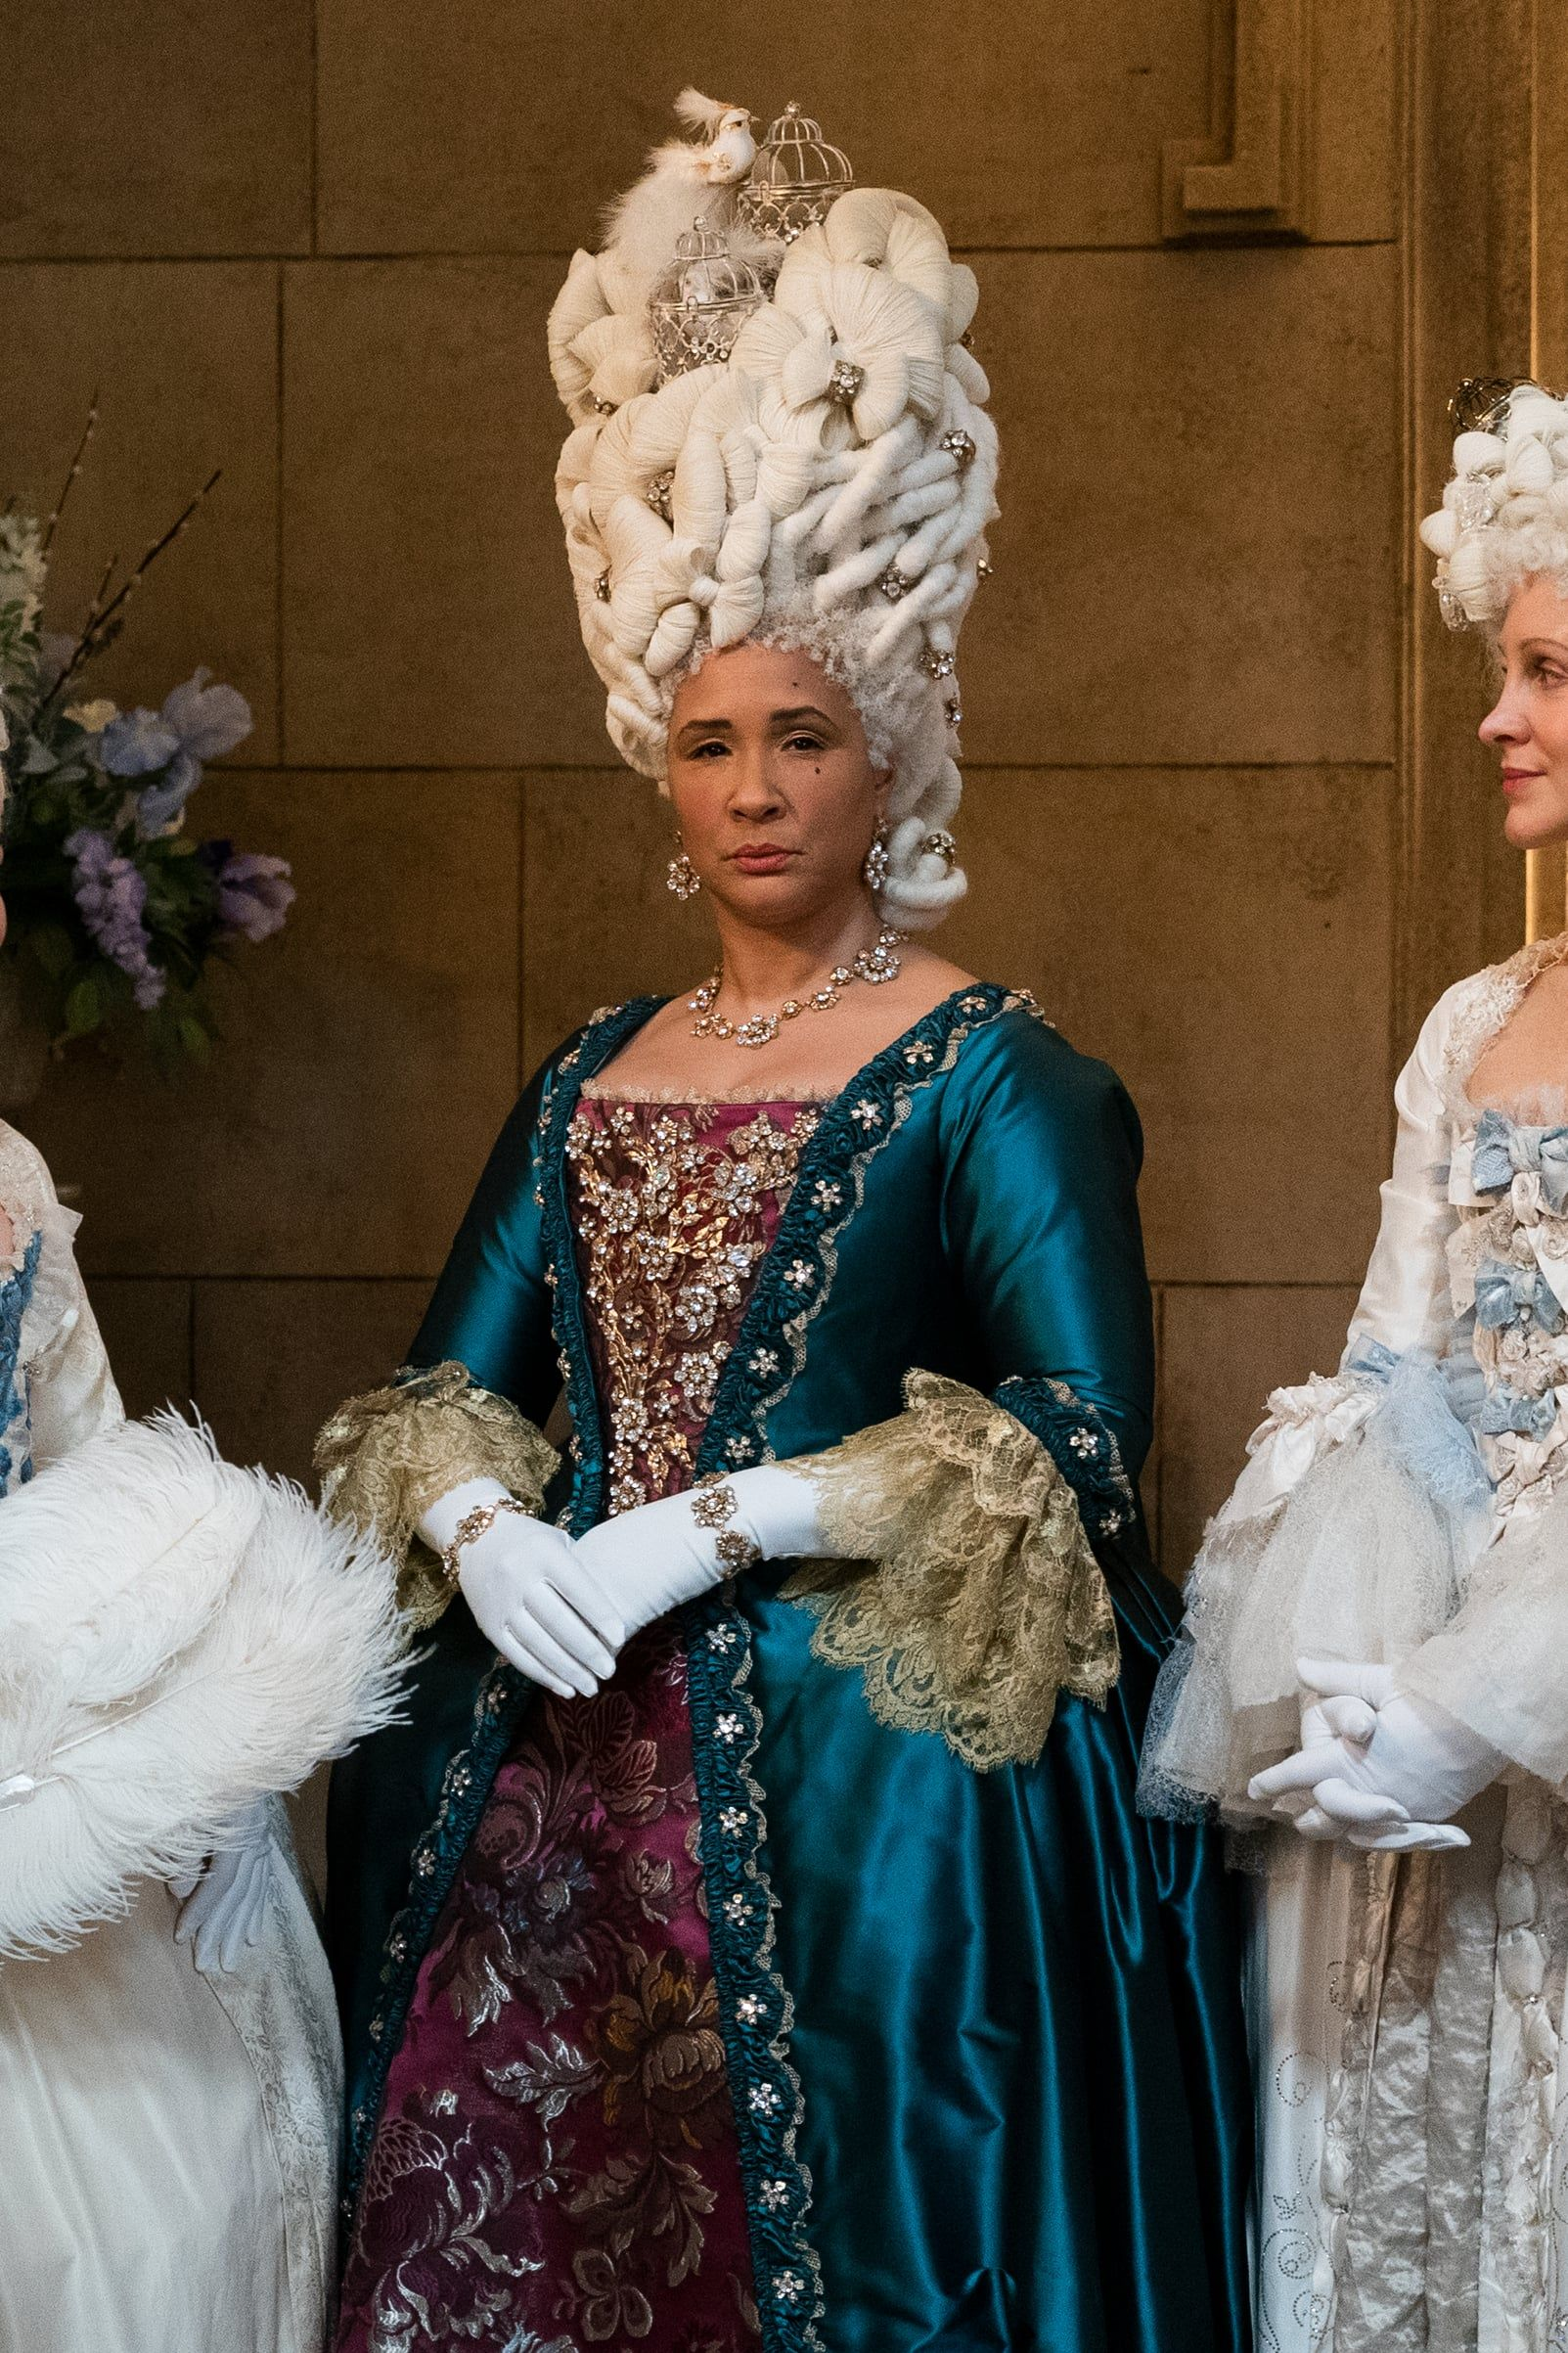 This Queen Charlotte Hairstyle On Bridgerton Was Inspired By Another Queen Beyonce In 2021 Fashion Ethereal Dress Fashion Favorite [ 2405 x 1603 Pixel ]